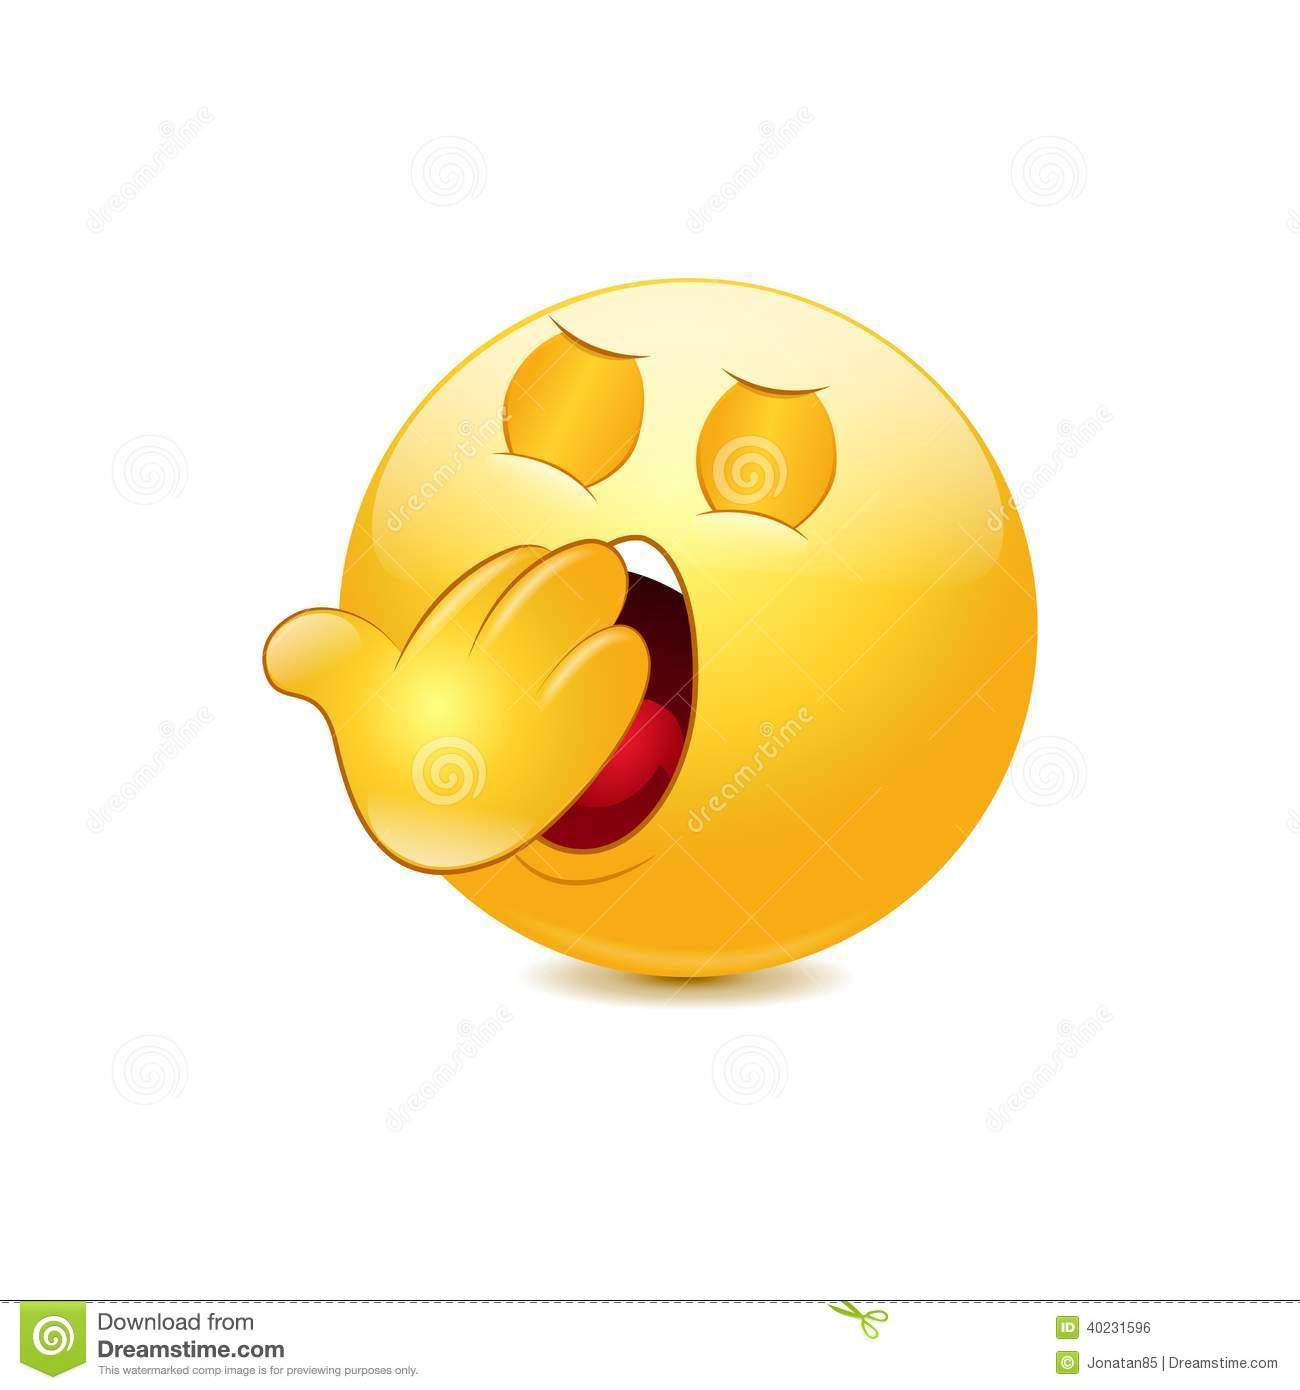 Yawn Emoticon Stock Vector - Image: 40231596